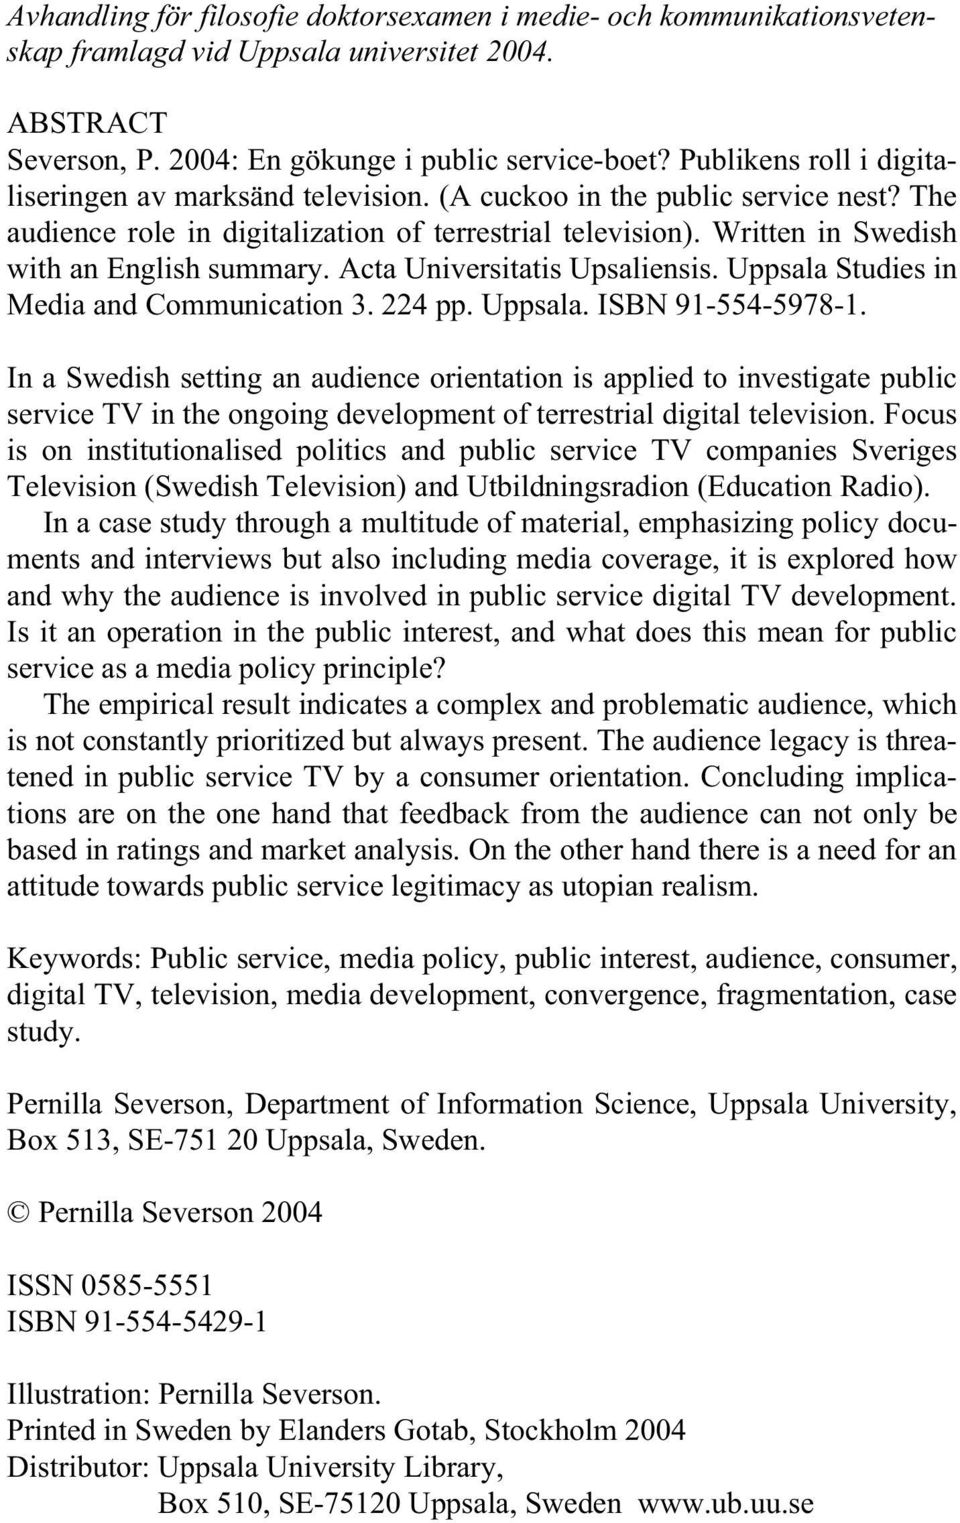 Written in Swedish with an English summary. Acta Universitatis Upsaliensis. Uppsala Studies in Media and Communication 3. 224 pp. Uppsala. ISBN 91-554-5978-1.